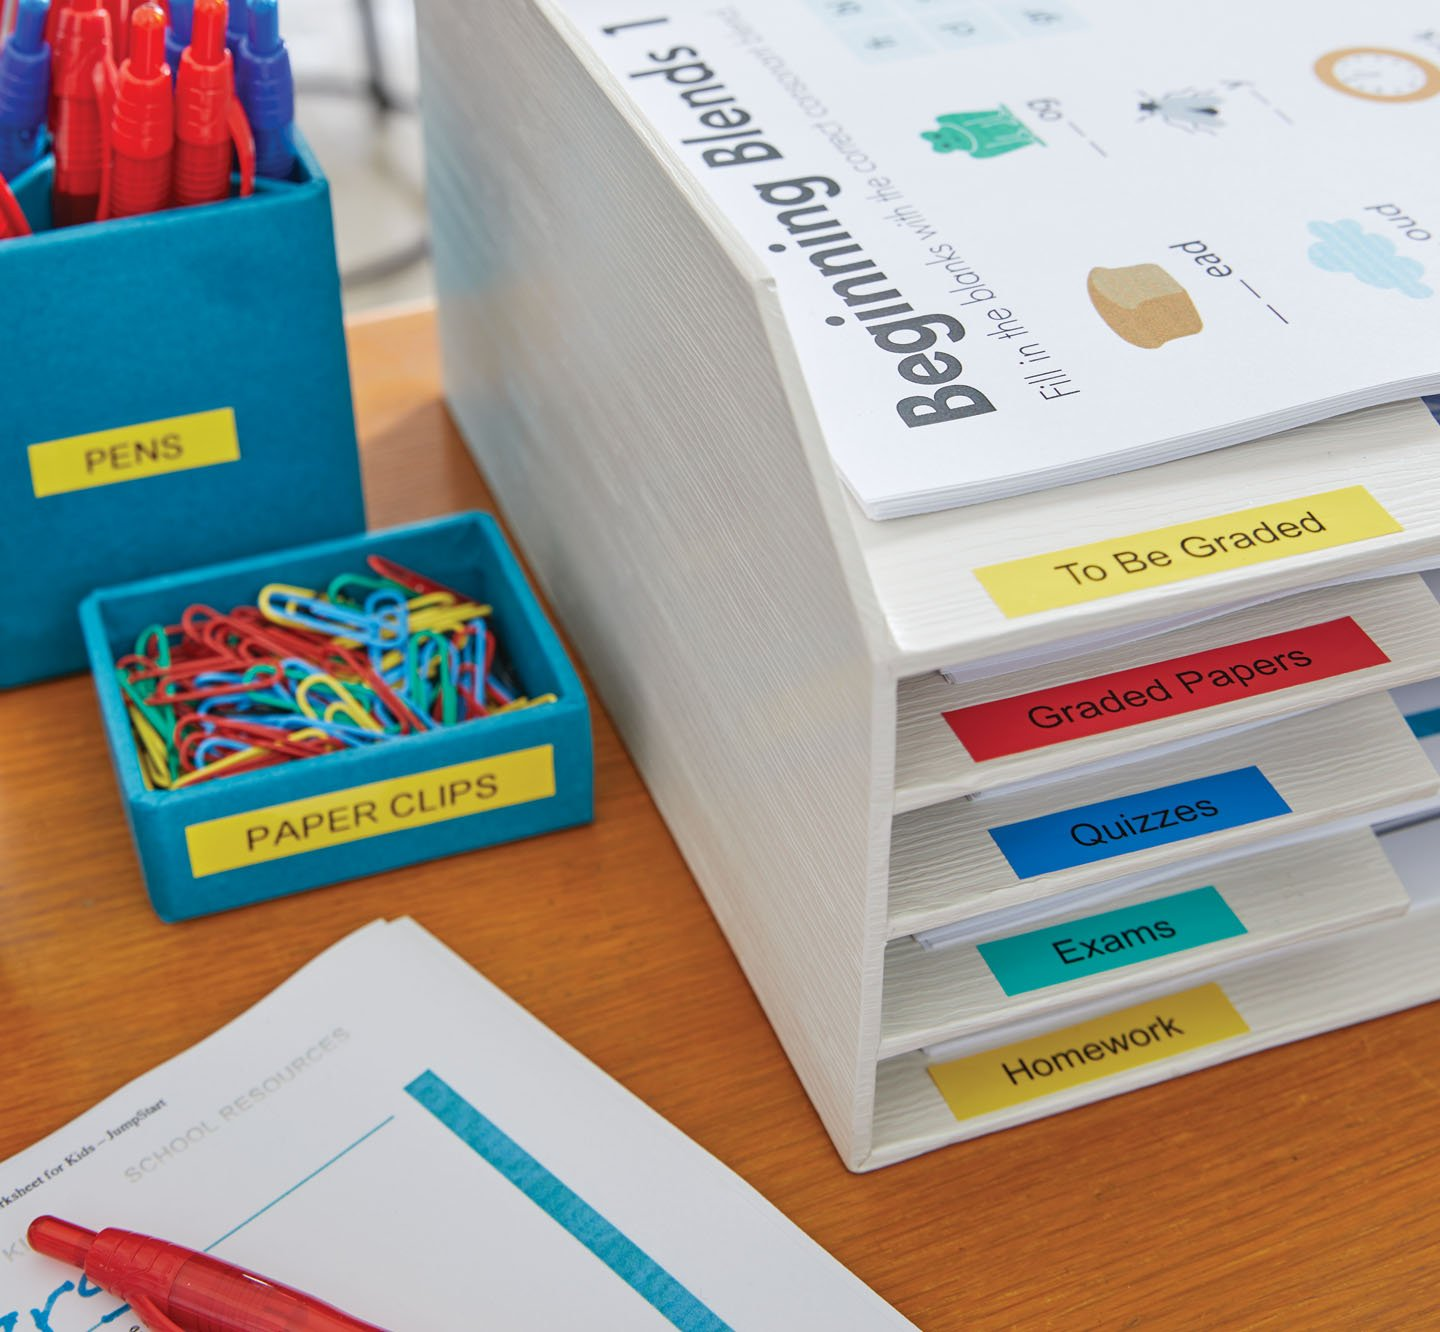 A desk with colorful labels on a desk organizer, paper clip holder and pen holder.